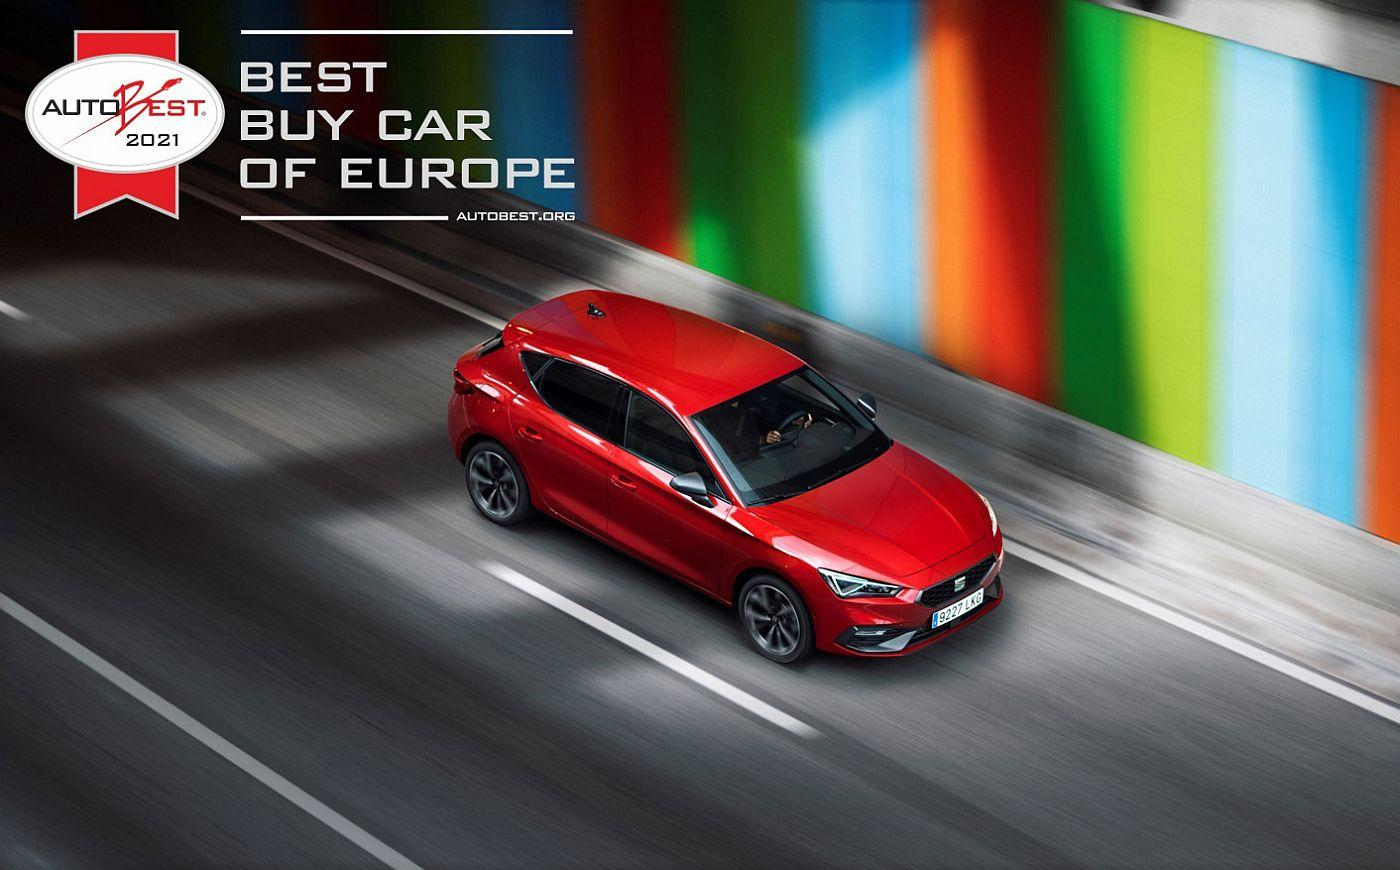 Best Buy Car of Europe  the all new SEAT Leon wins AUTOBEST   HQ